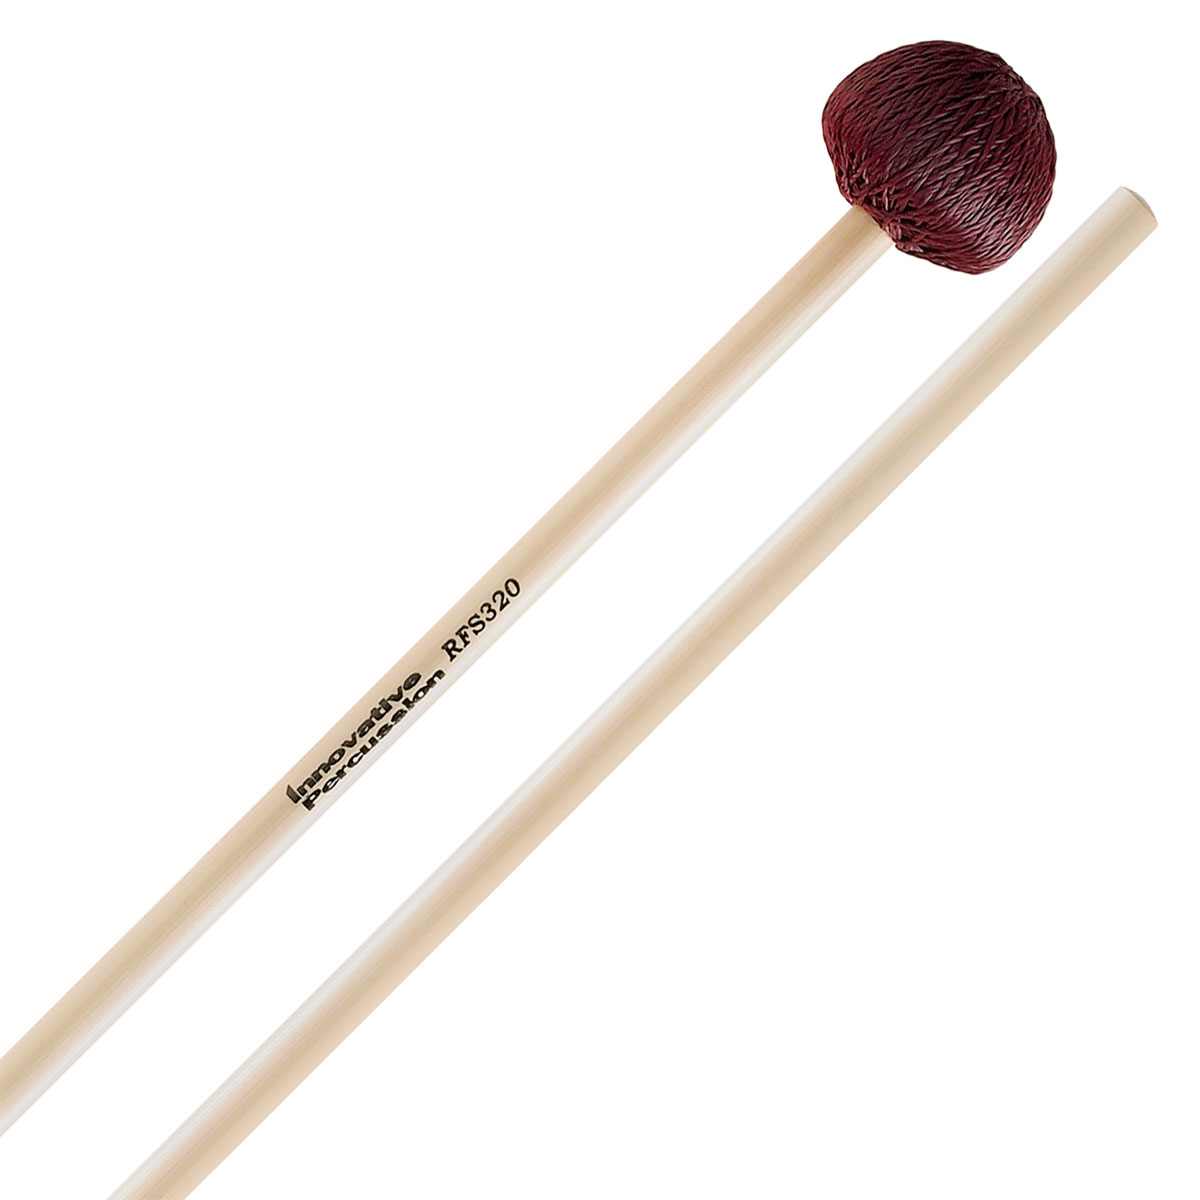 Innovative Percussion RFS320 Field Series Soft Vibraphone Mallets